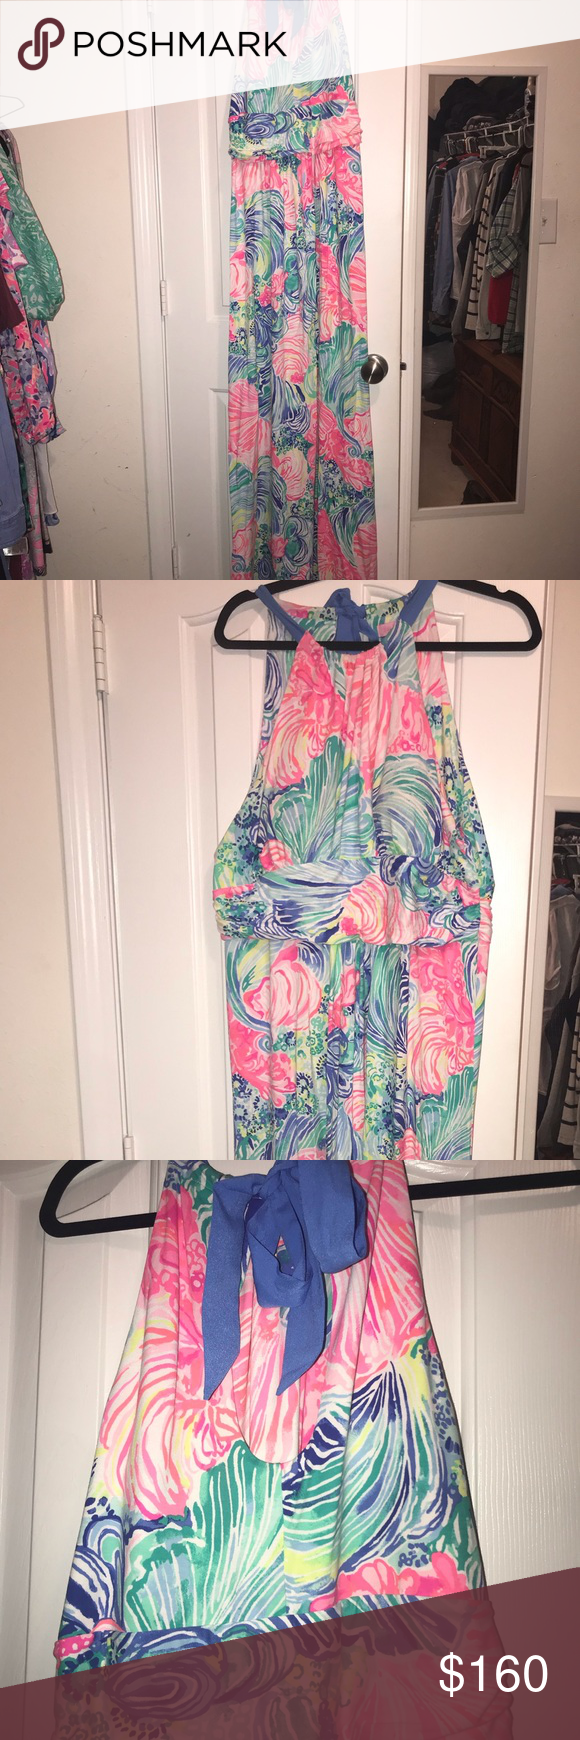 Size 12 Lilly Pulitzer Maxi Dress Lilly Pulitzer Maxi Dress Maxi Dress Lilly Pulitzer [ 1740 x 580 Pixel ]